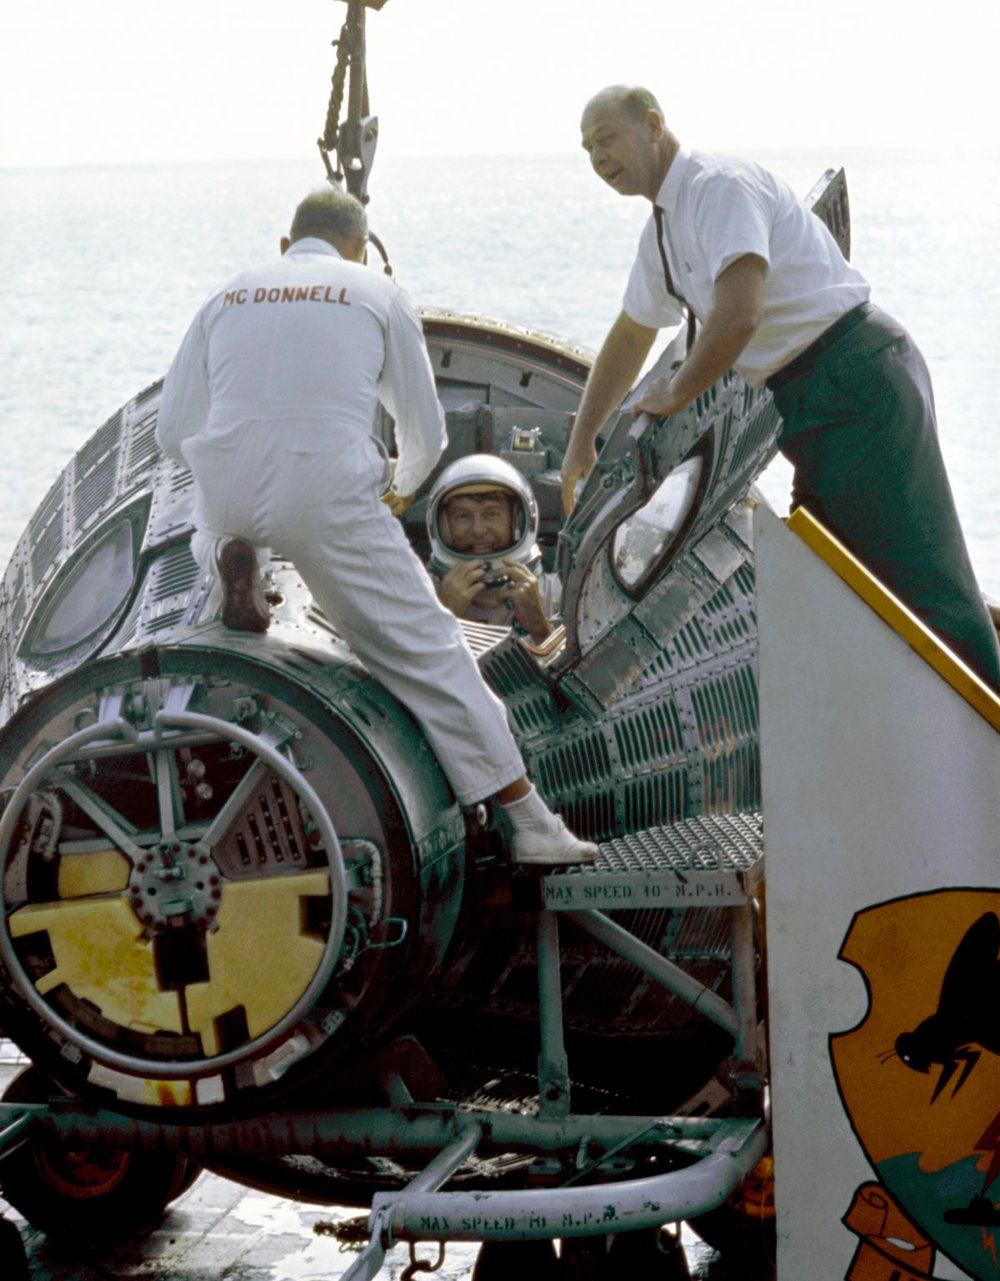 Astronaut Walter H. Schirra Jr. (on right), Command pilot, climbs from his Gemini VI spacecraft as he and Astronaut Thomas P. Stafford (not in view) arrive aboard the aircraft carrier U.S.S. Wasp